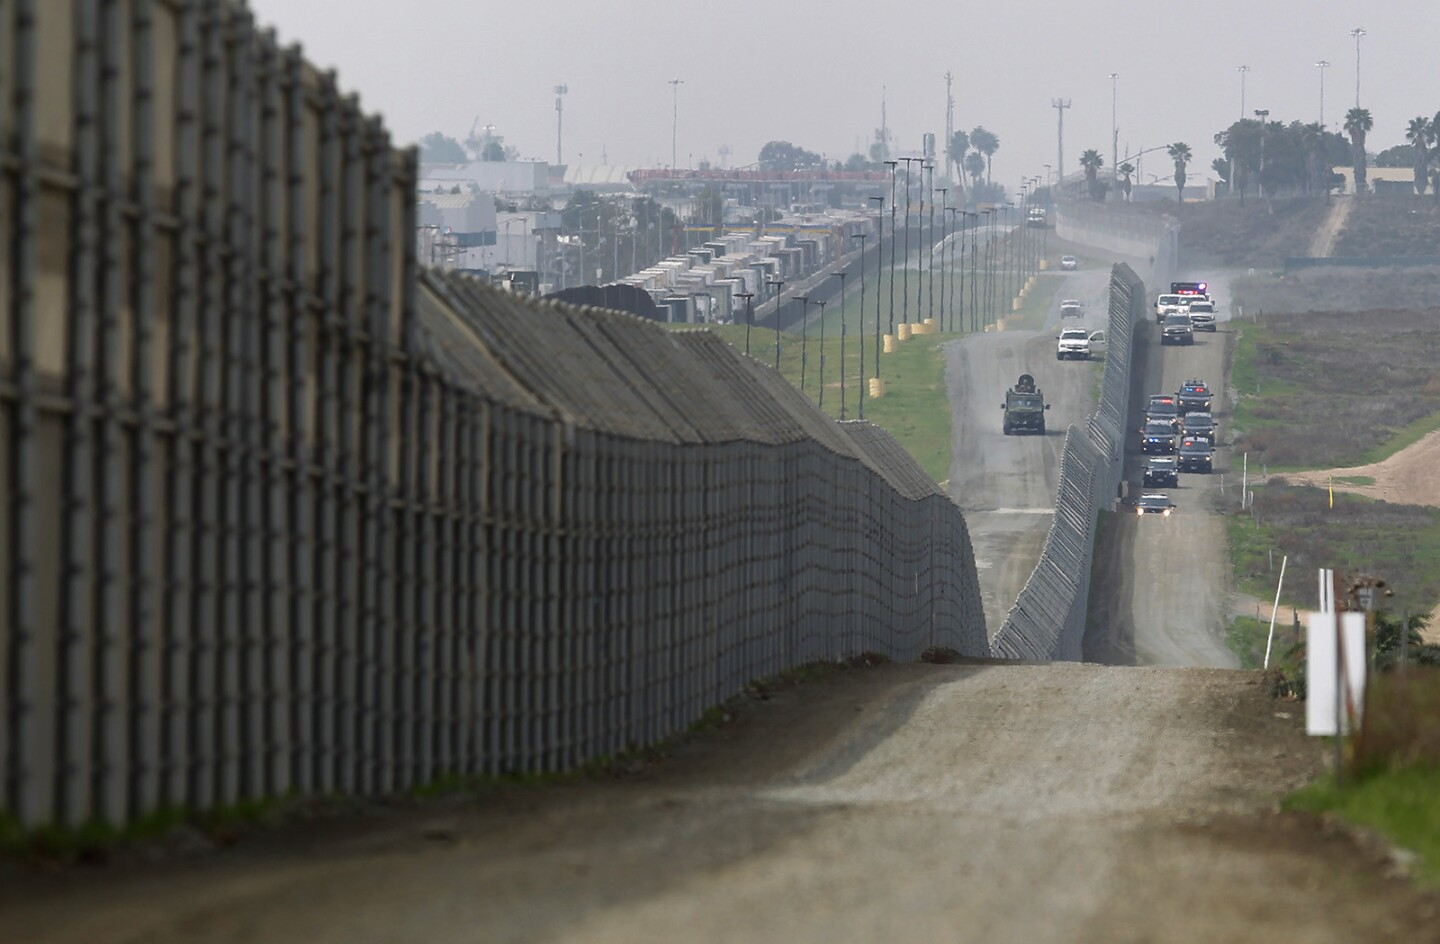 President Donald Trump's motorcade drives along the Mexico border on his way to tour the border wall prototypes near the Otay Mesa Port of Entry in San Diego County on March 13, 2018. (Photo by K.C. Alfred/ San Diego Union -Tribune)